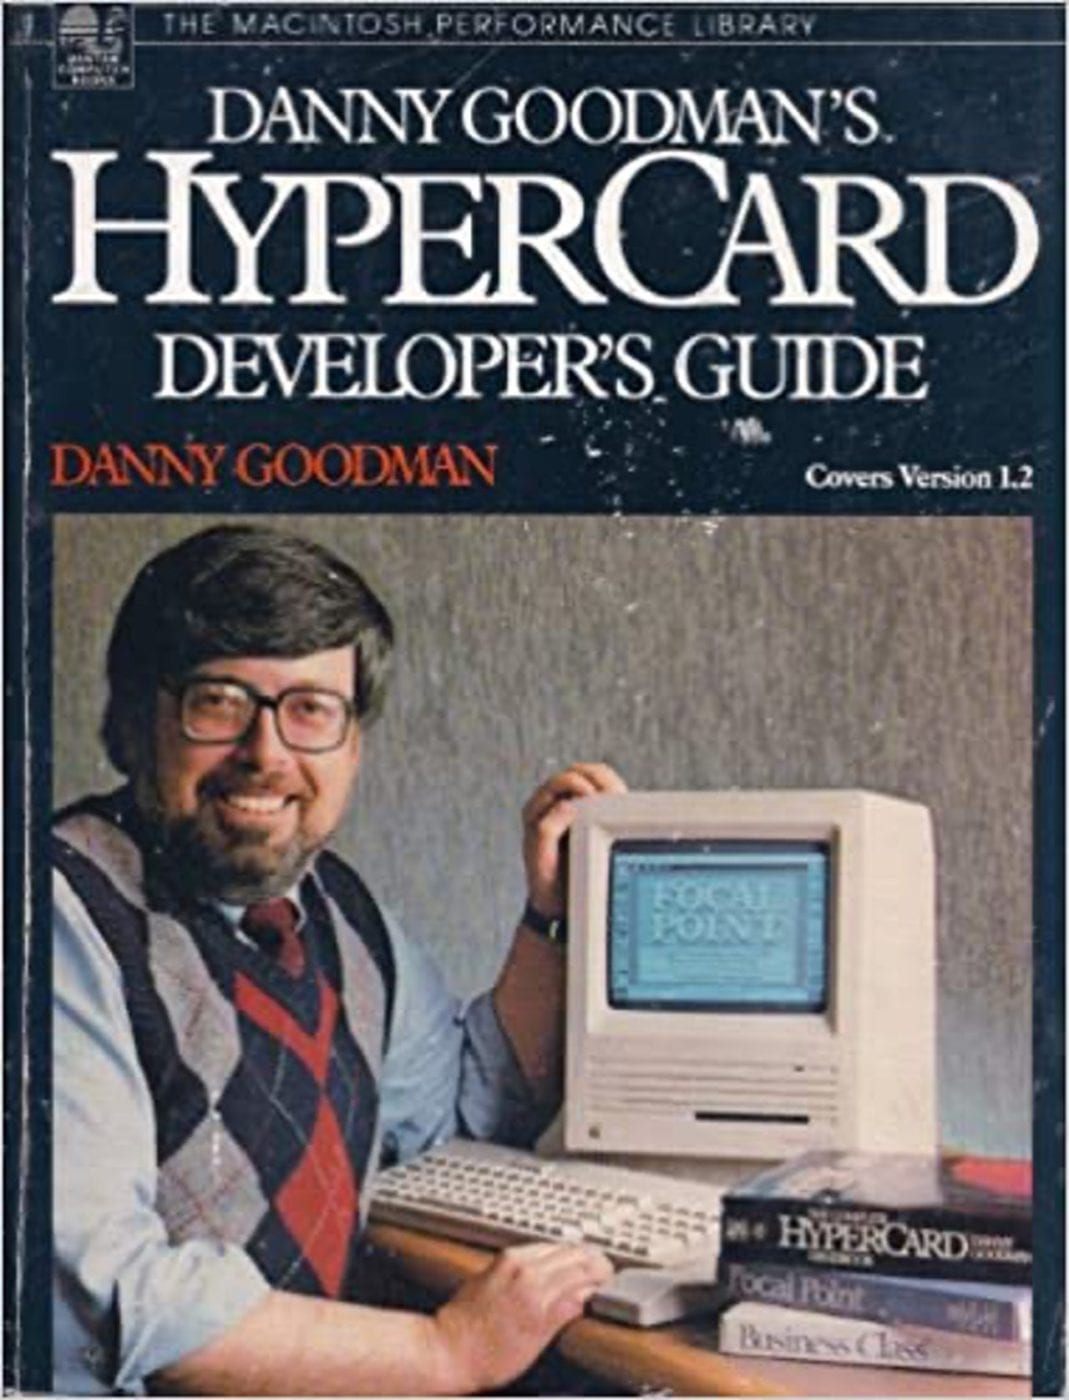 Danny Goodman probably did more to popularize HyperCard as a powerful programming and prototyping tool than anyone else